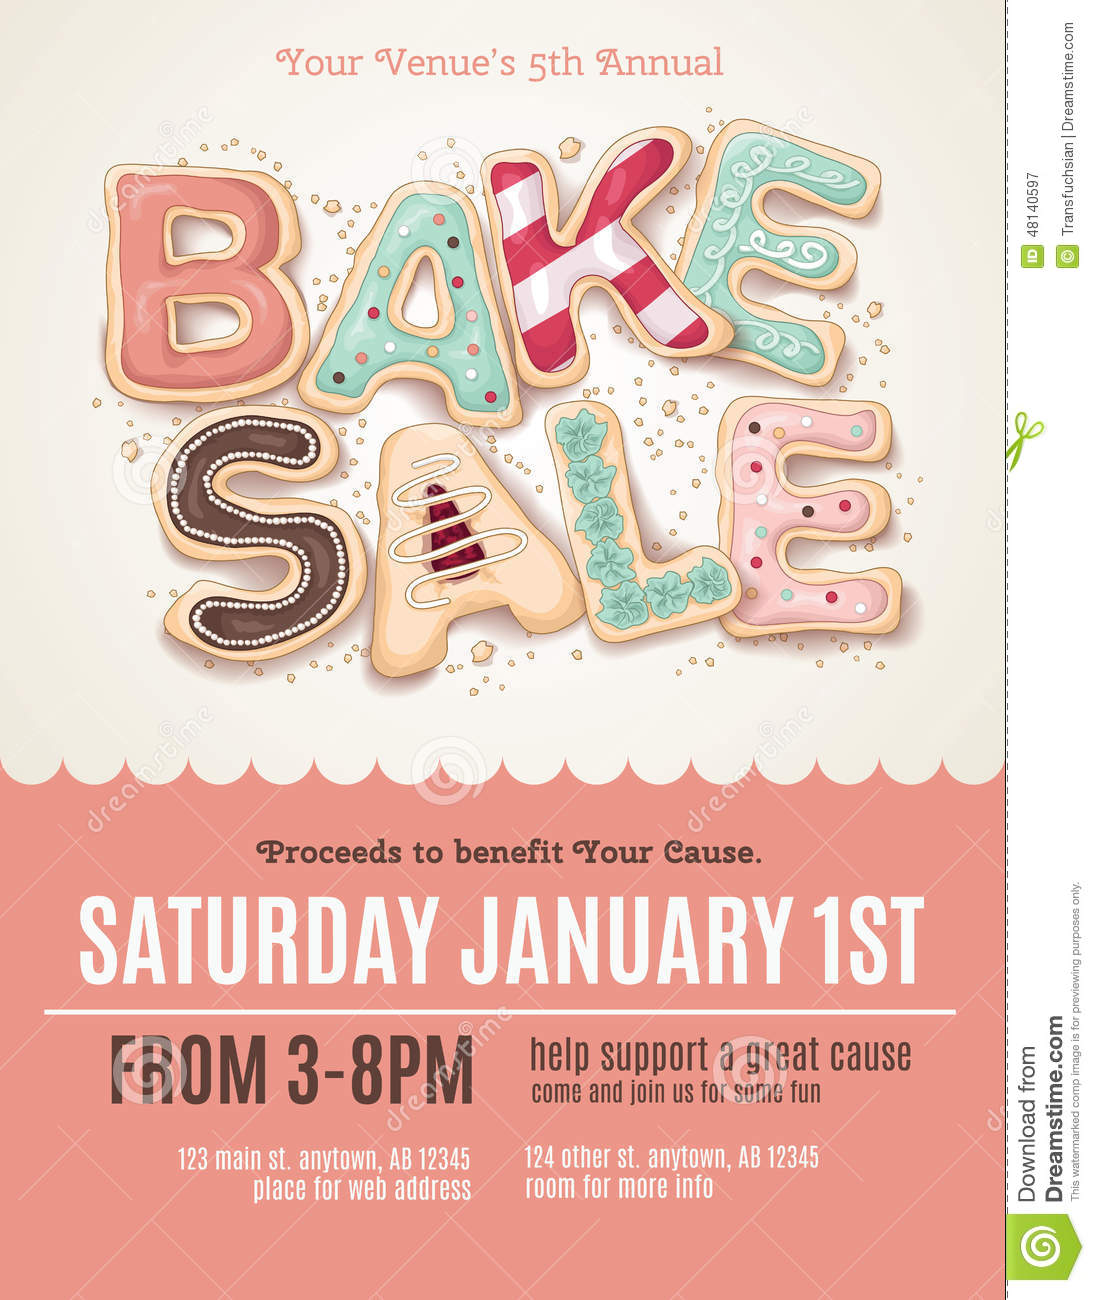 Fun Cookie Bake Sale Flyer Template Vector Image 48140597 – For Sale Flyer Template Free